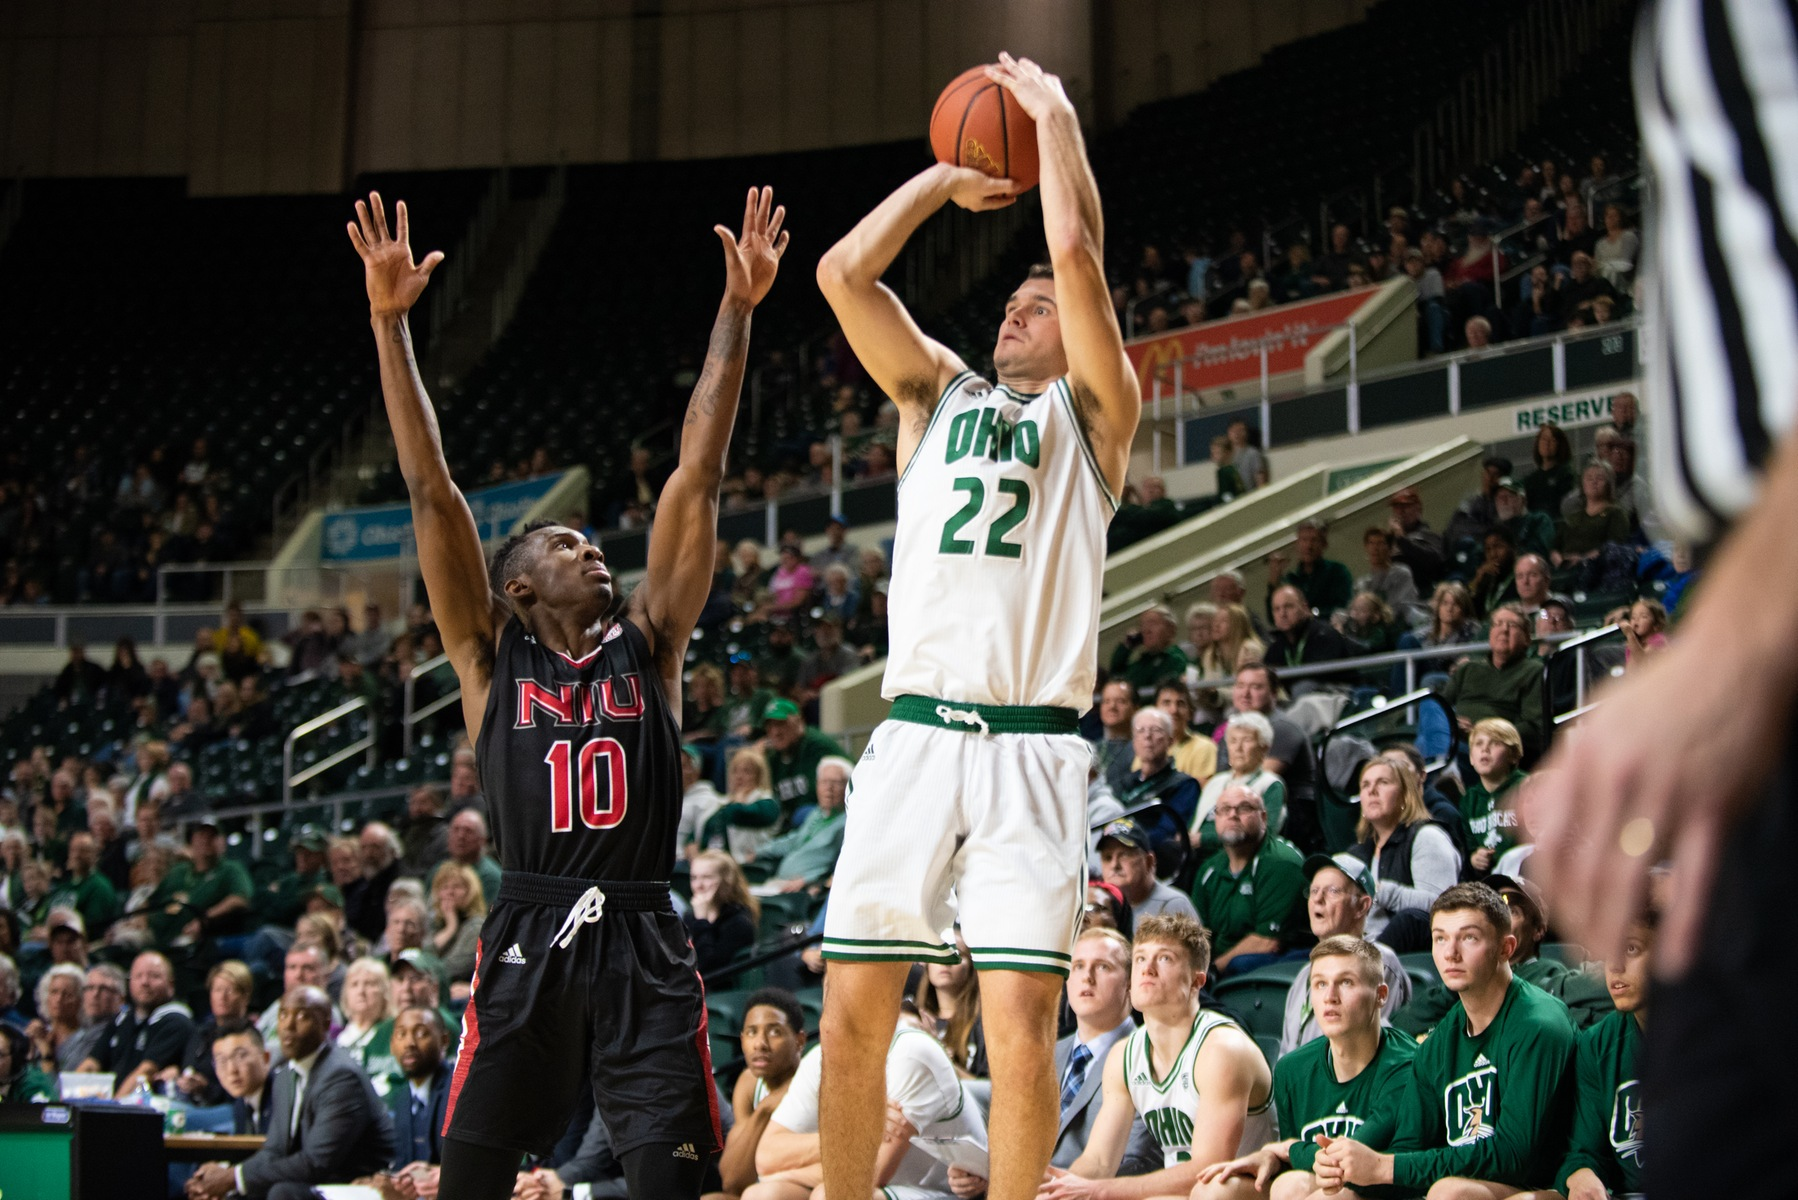 Ohio Men's Basketball Looks to Get Back on Track at Ball State on Saturday